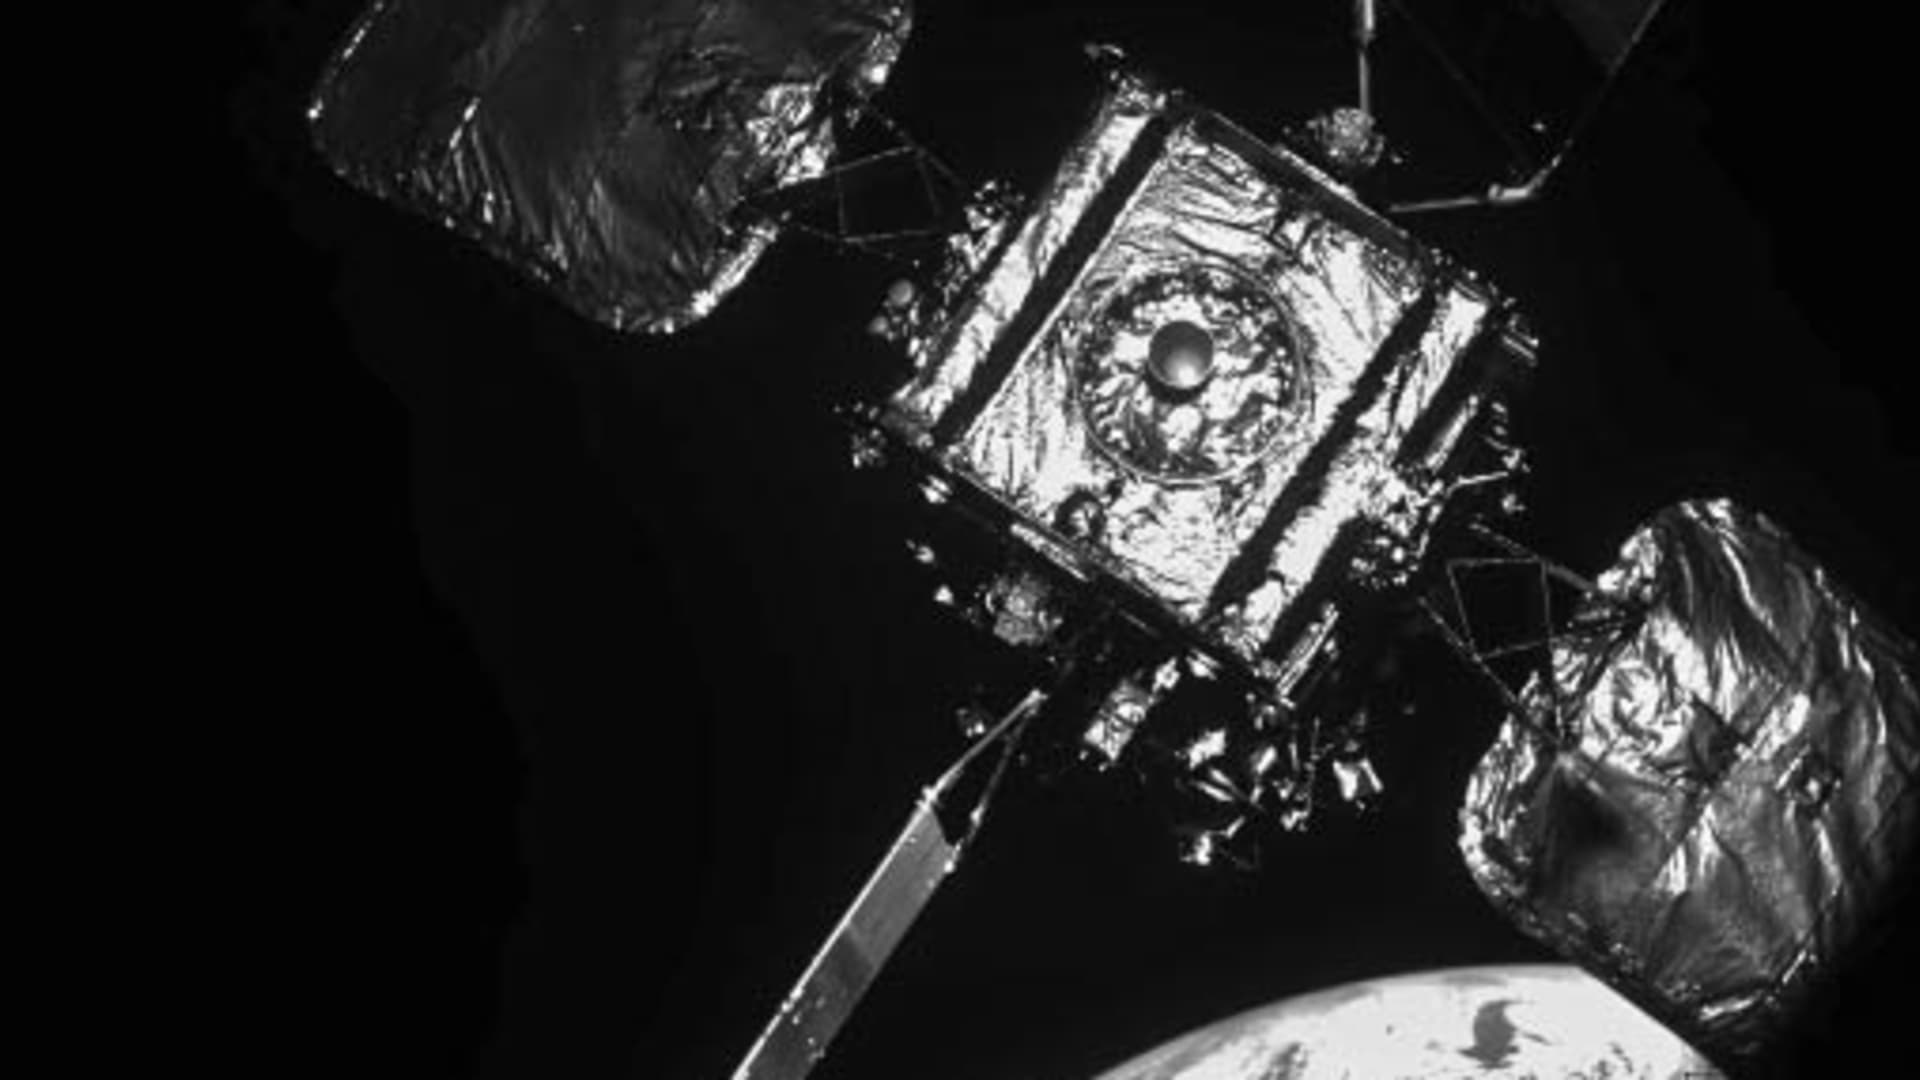 A close up look at Intelsat's IS-10-02 satellite as MEV-2 approached for docking in orbit.